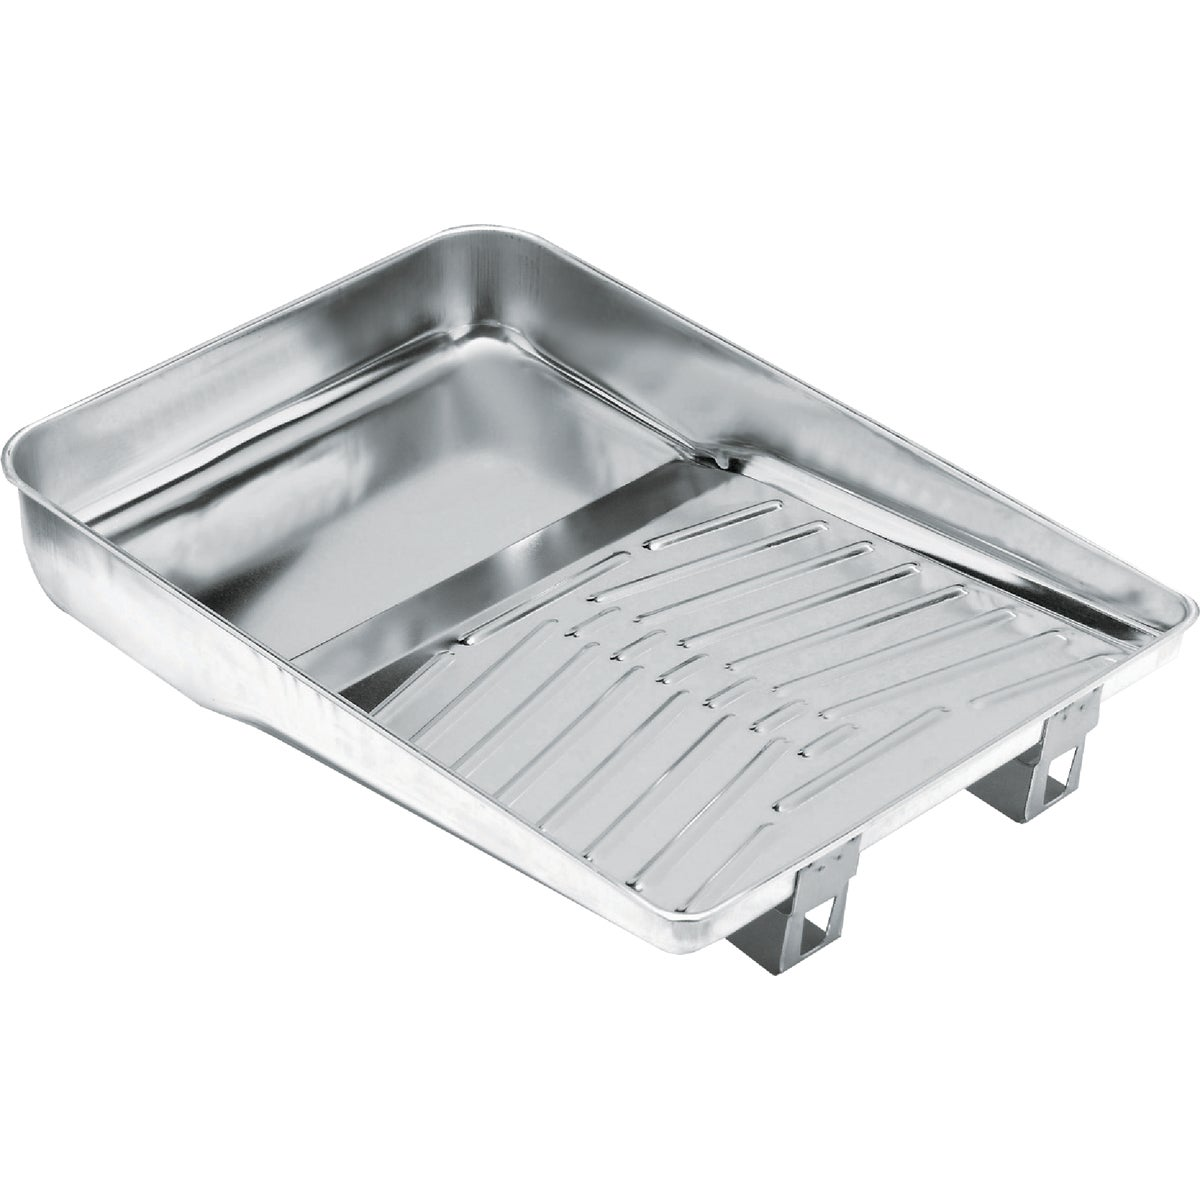 "11"" DELUXE METAL TRAY - R402-11 by Wooster Brush Co"